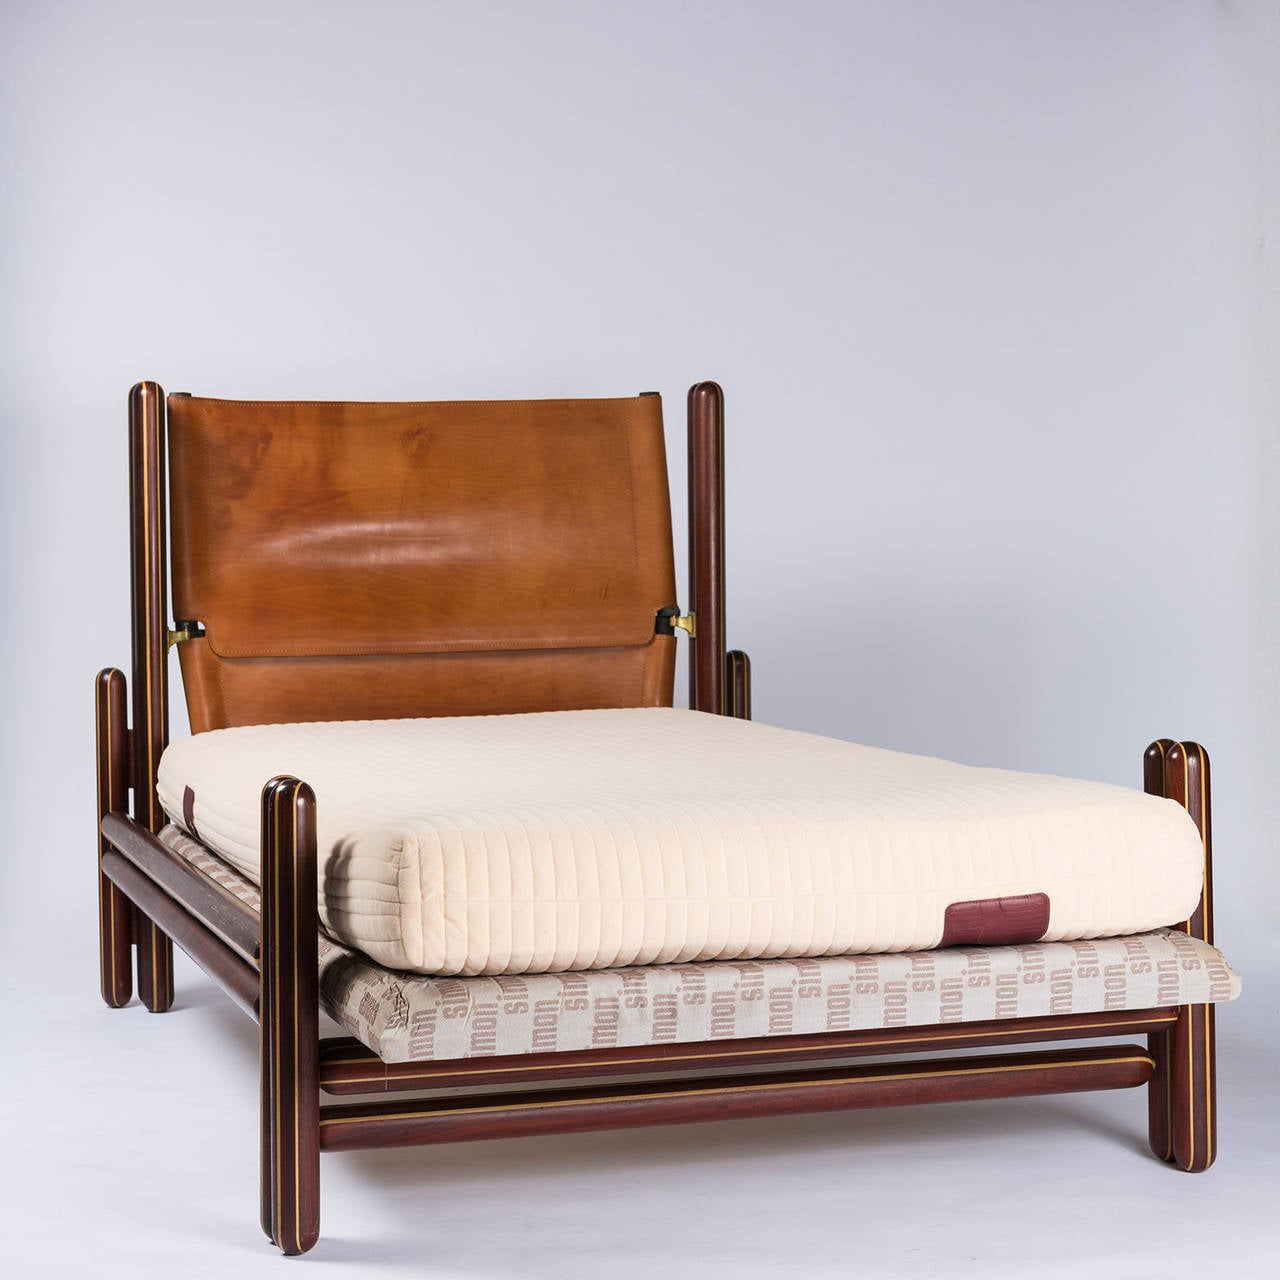 Toledo Bed By Carlo Scarpa By Simon Gavina For Sale At 1stdibs